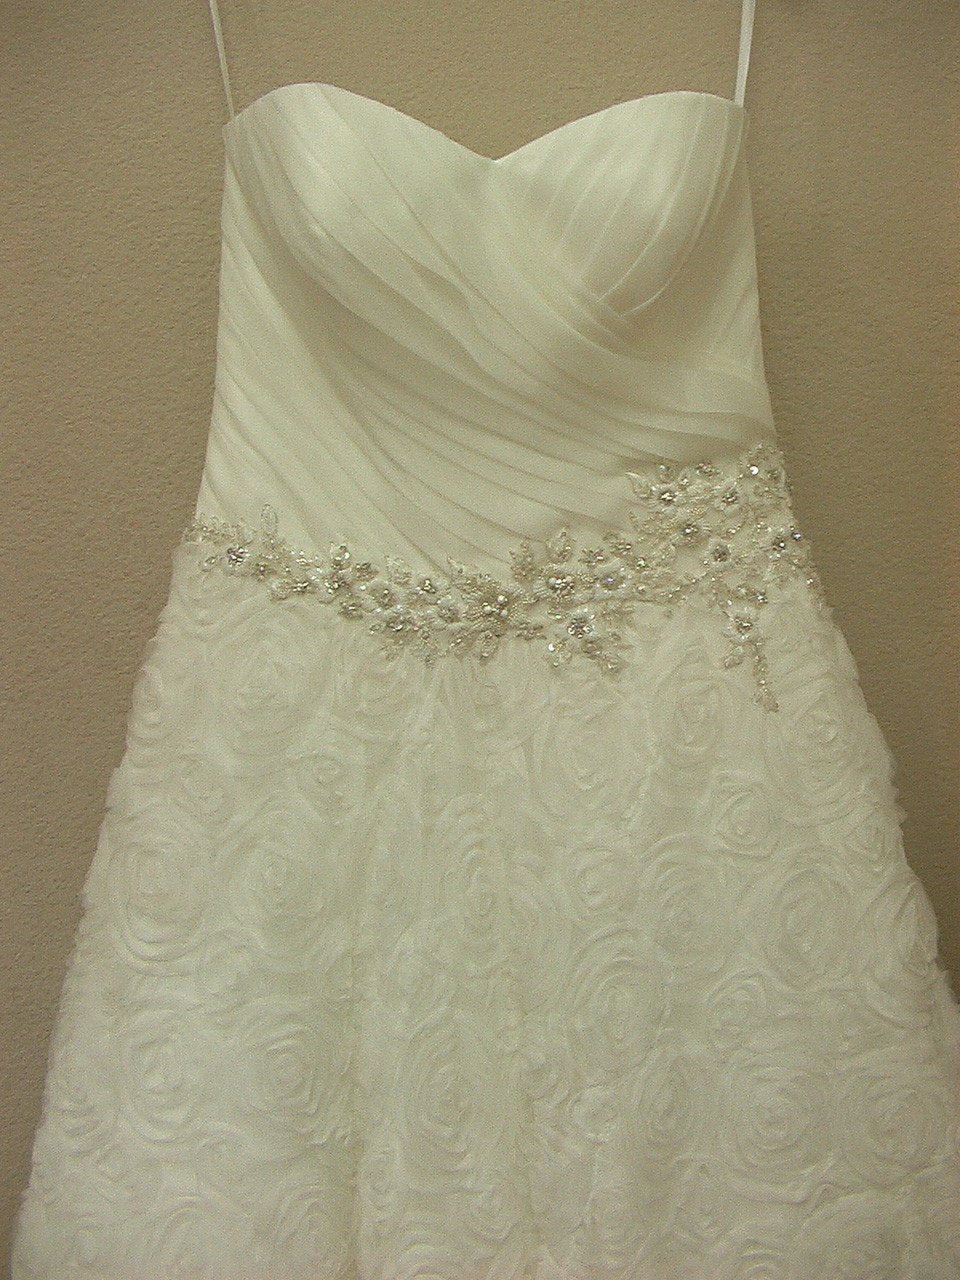 Allure 2463 Ivory/Silver size 12 In Stock Wedding Dress - Tom's Bridal